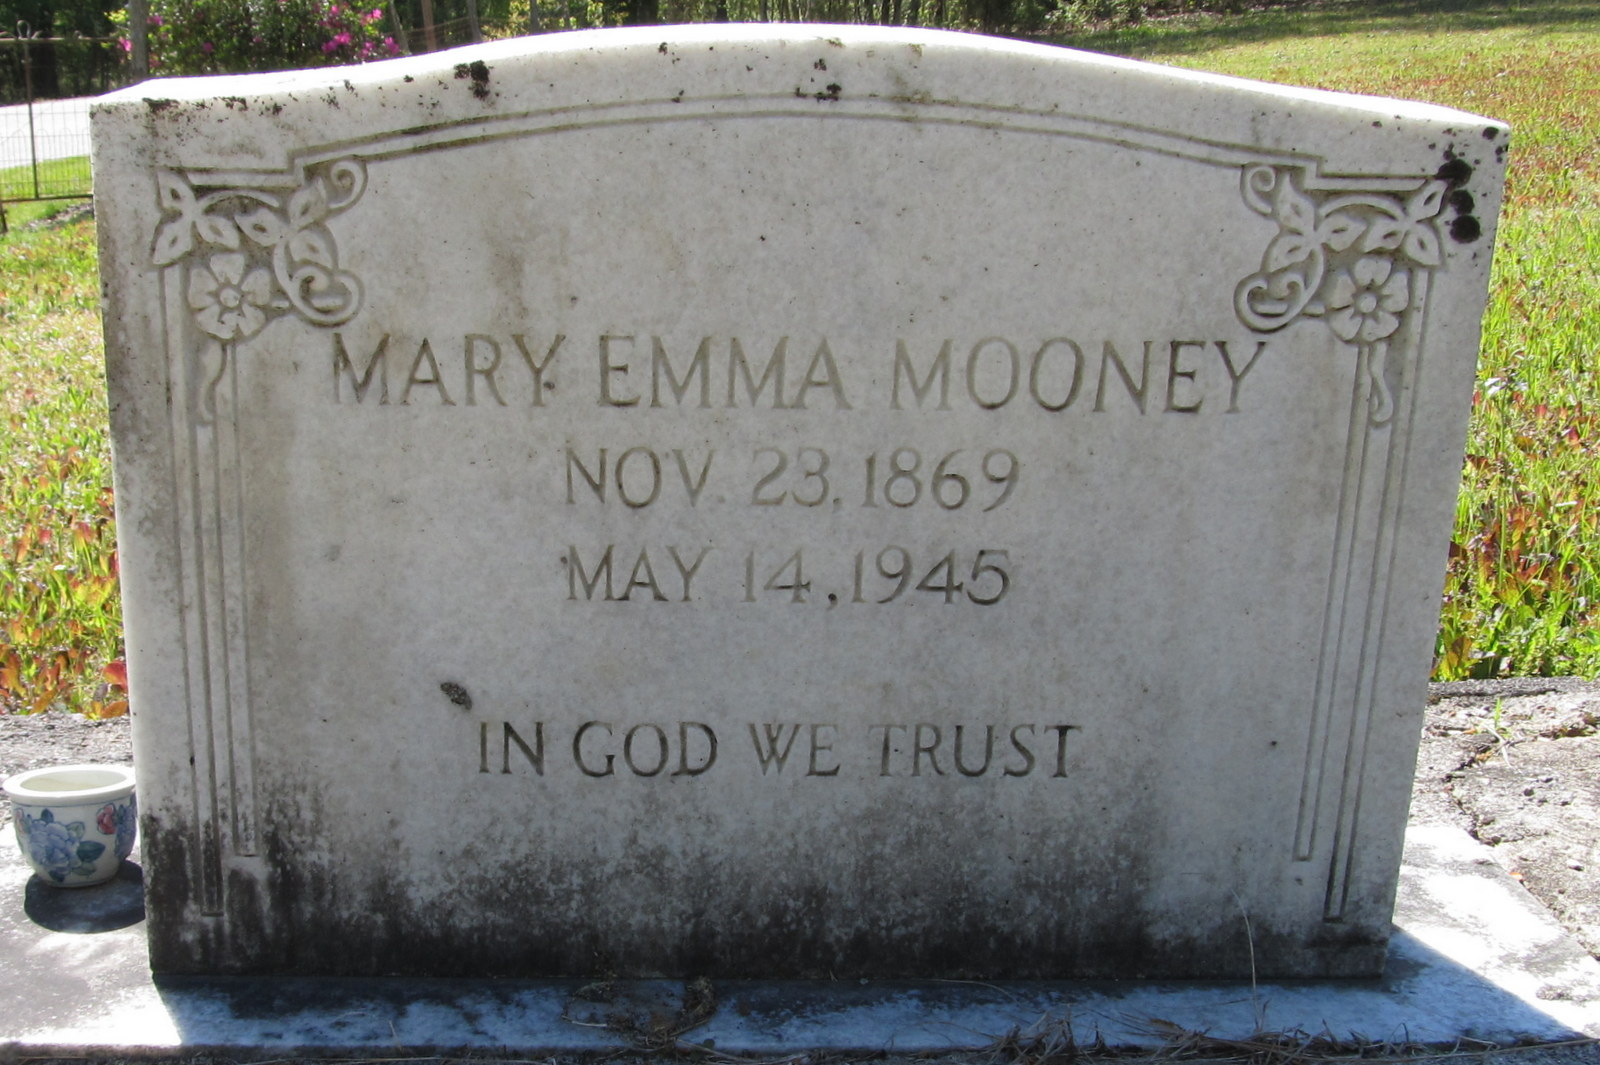 Mary Emma Mooney